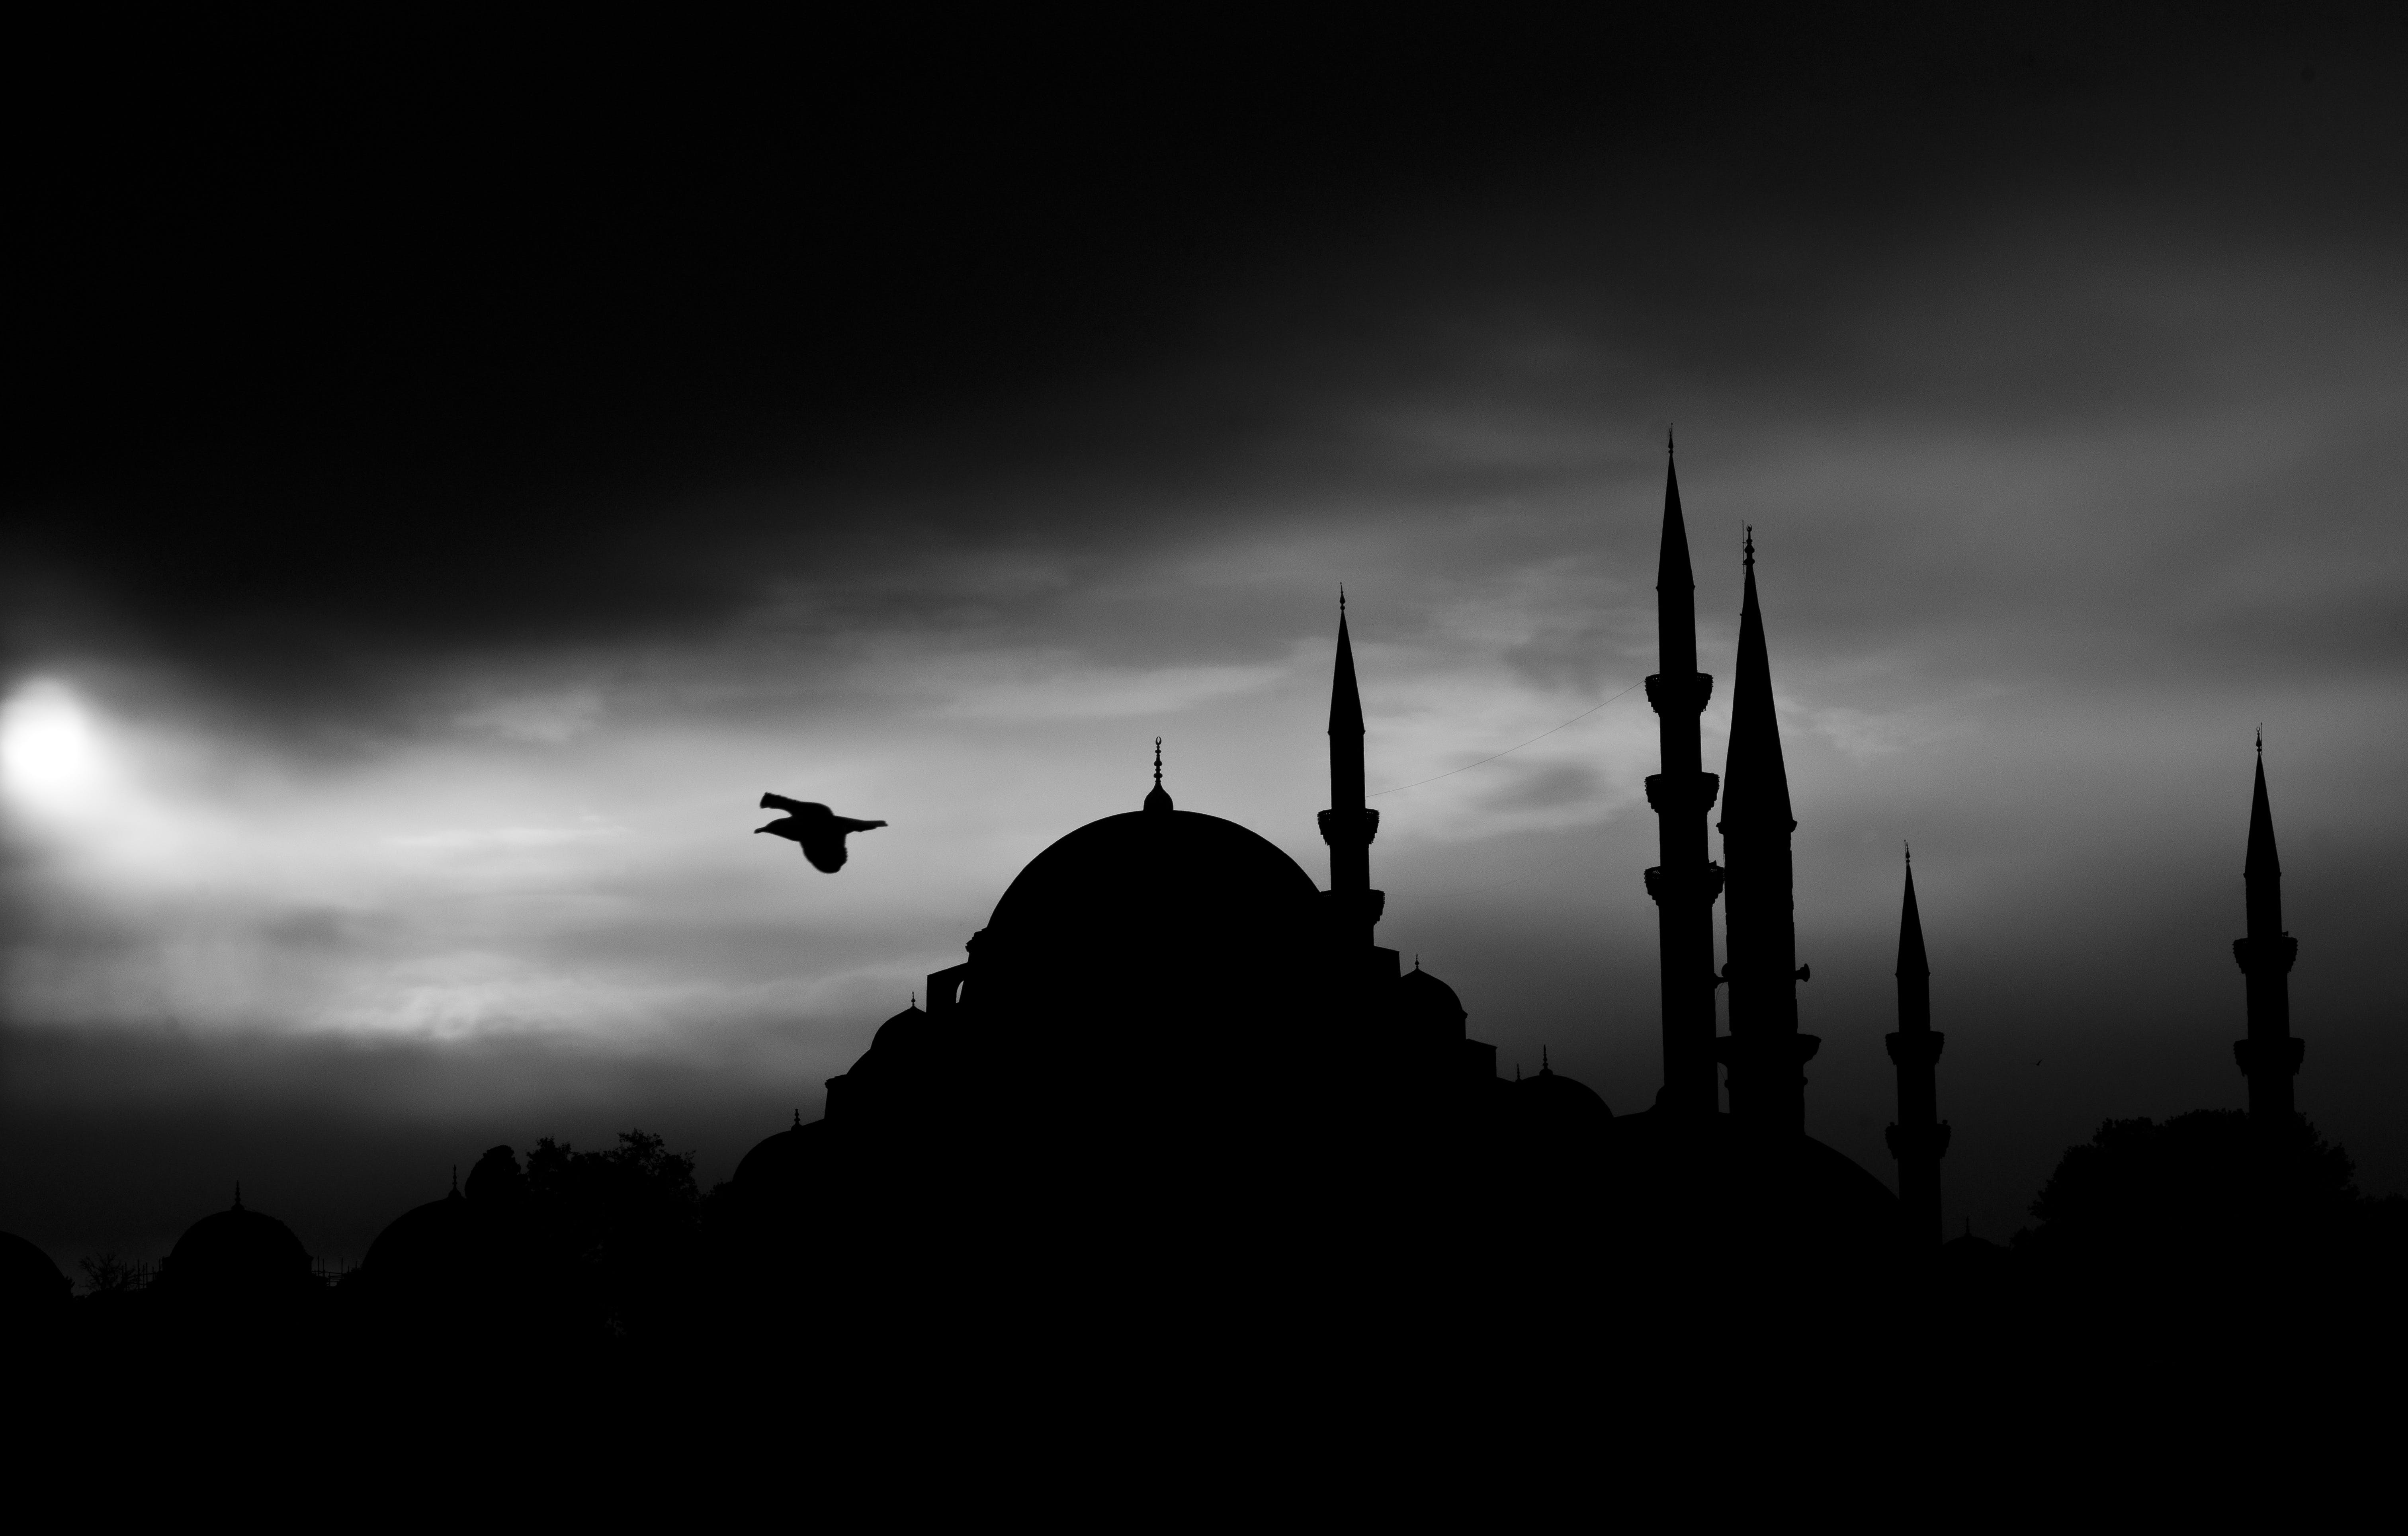 Grayscale Photography of Bird Flying Above Dome Building